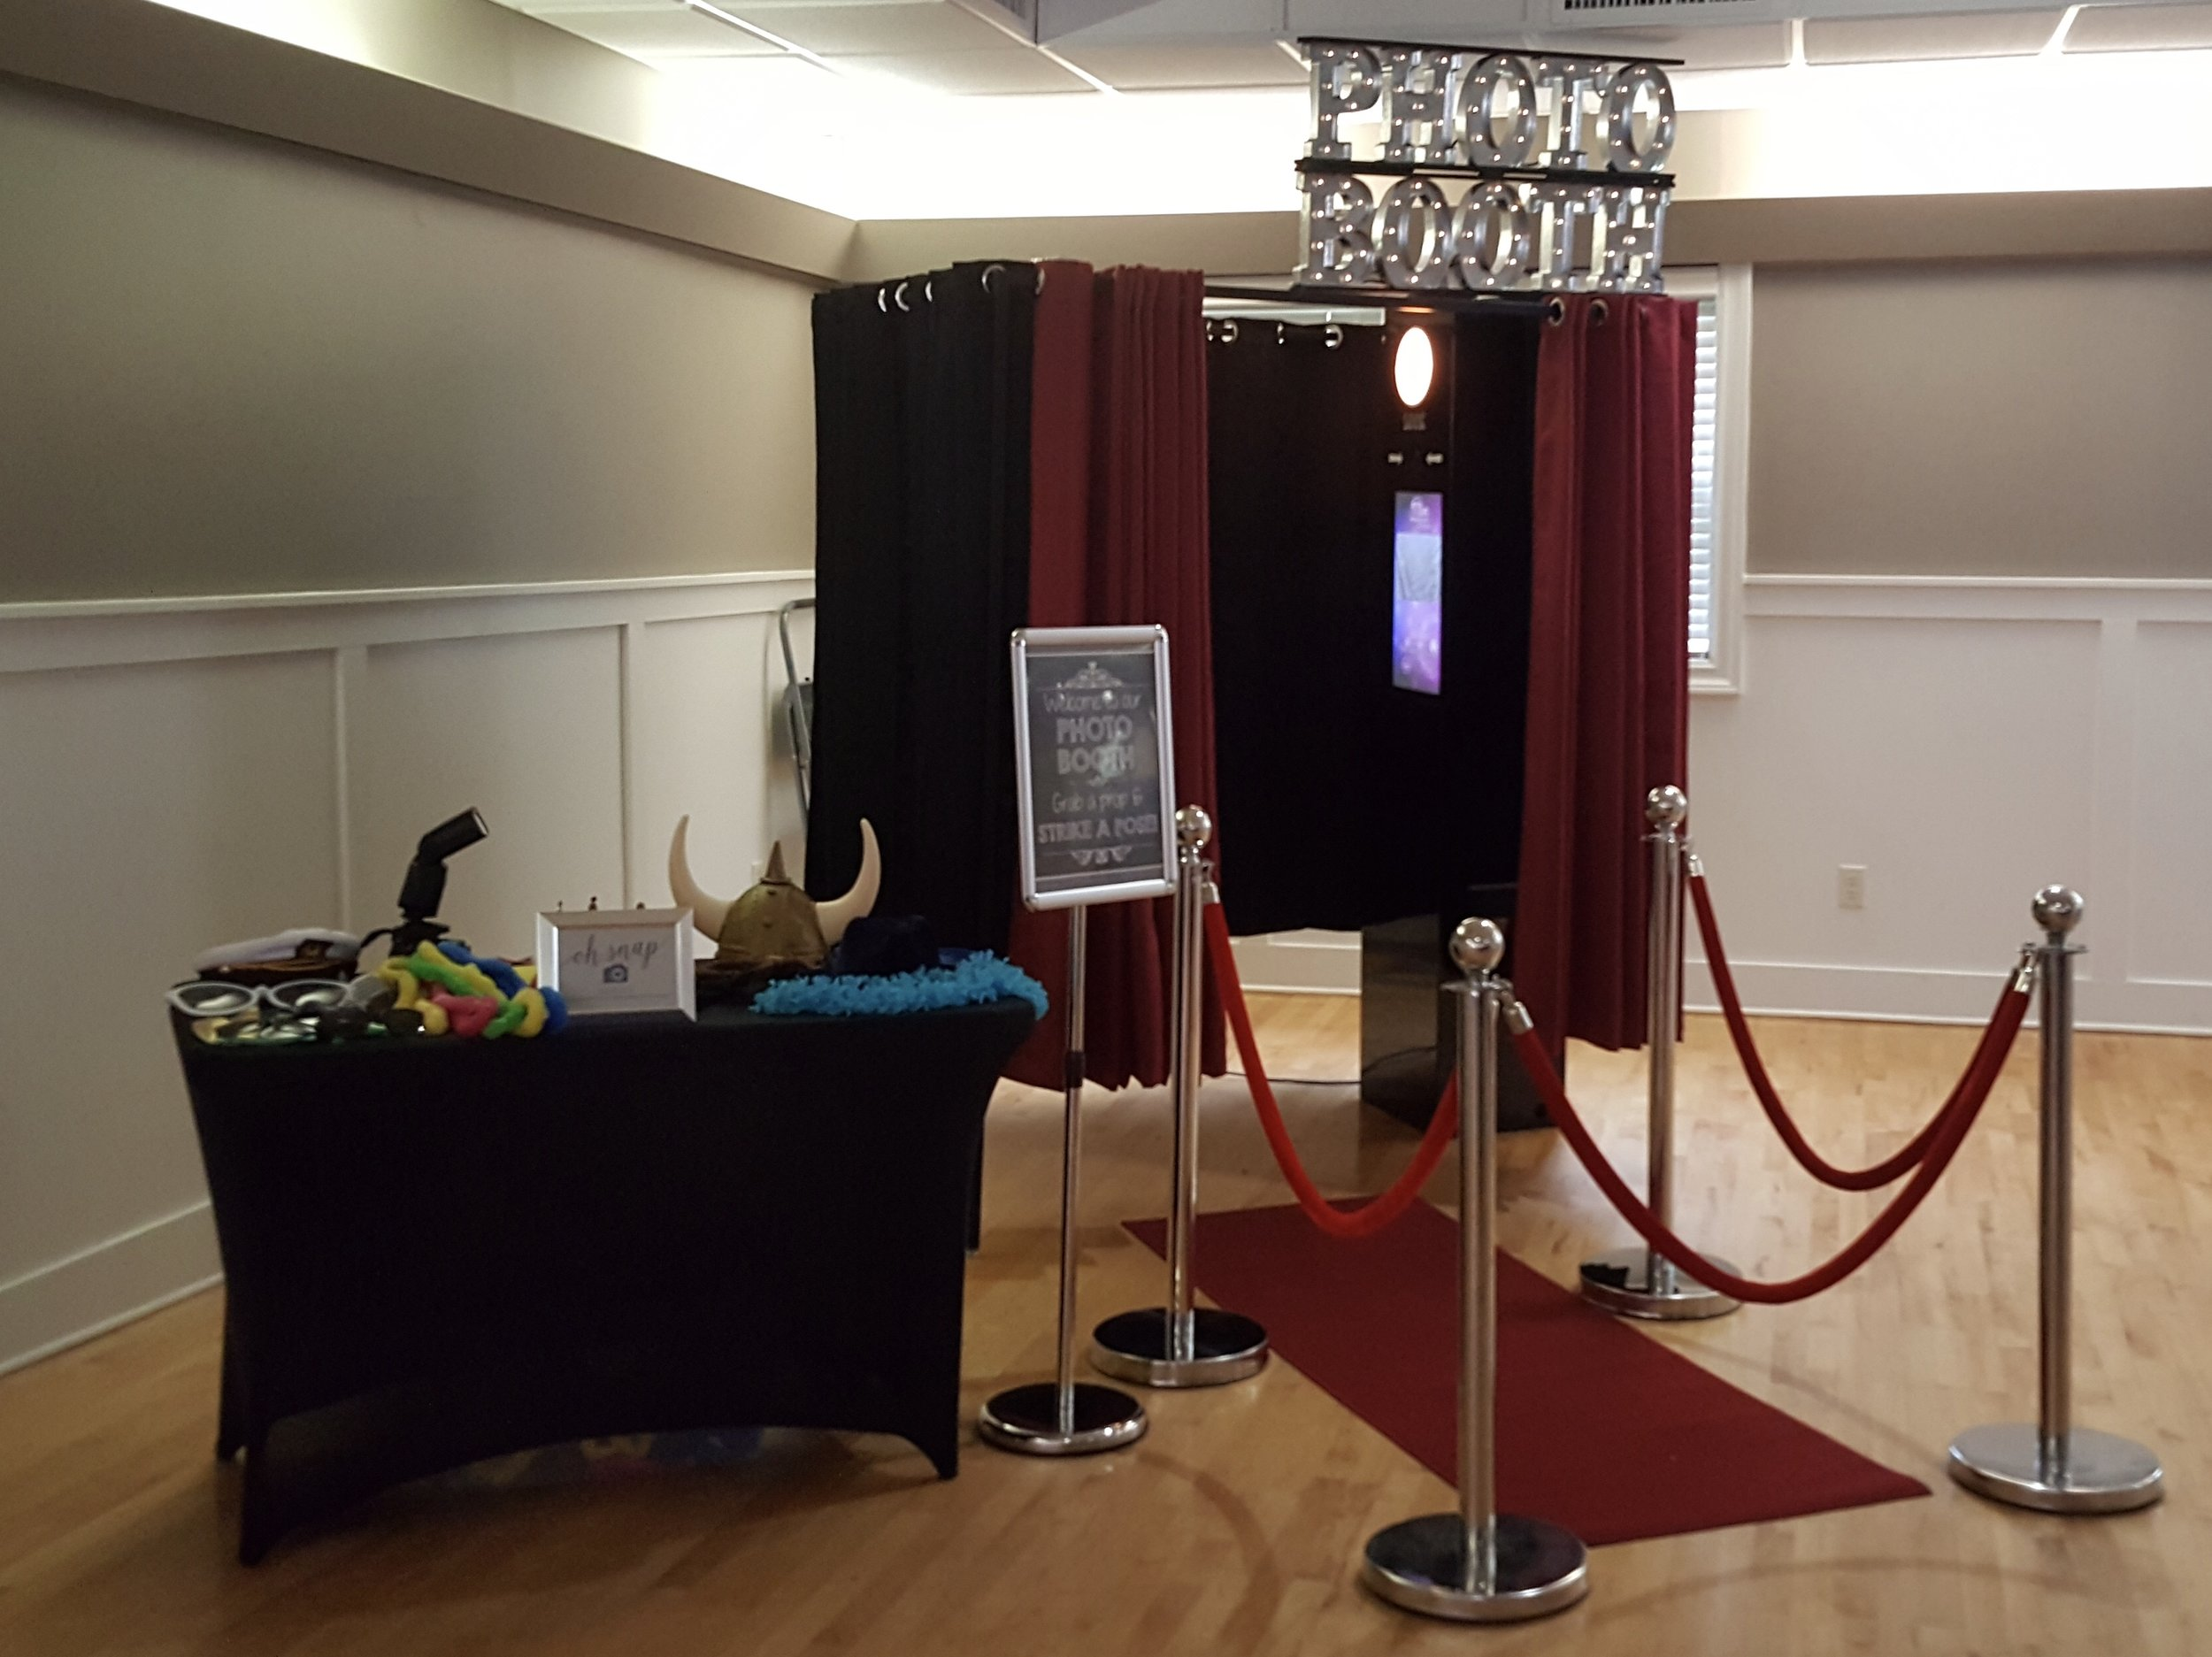 Photo Booth - A photo booth can add a touch of class and a lot of fun to your wedding! Find out why so many couples choose our booth for their special day!Save $100 when you add our Photo Booth to any of our packages!CLICK HERE TO CHECK OUT OUR PHOTO BOOTH RATES